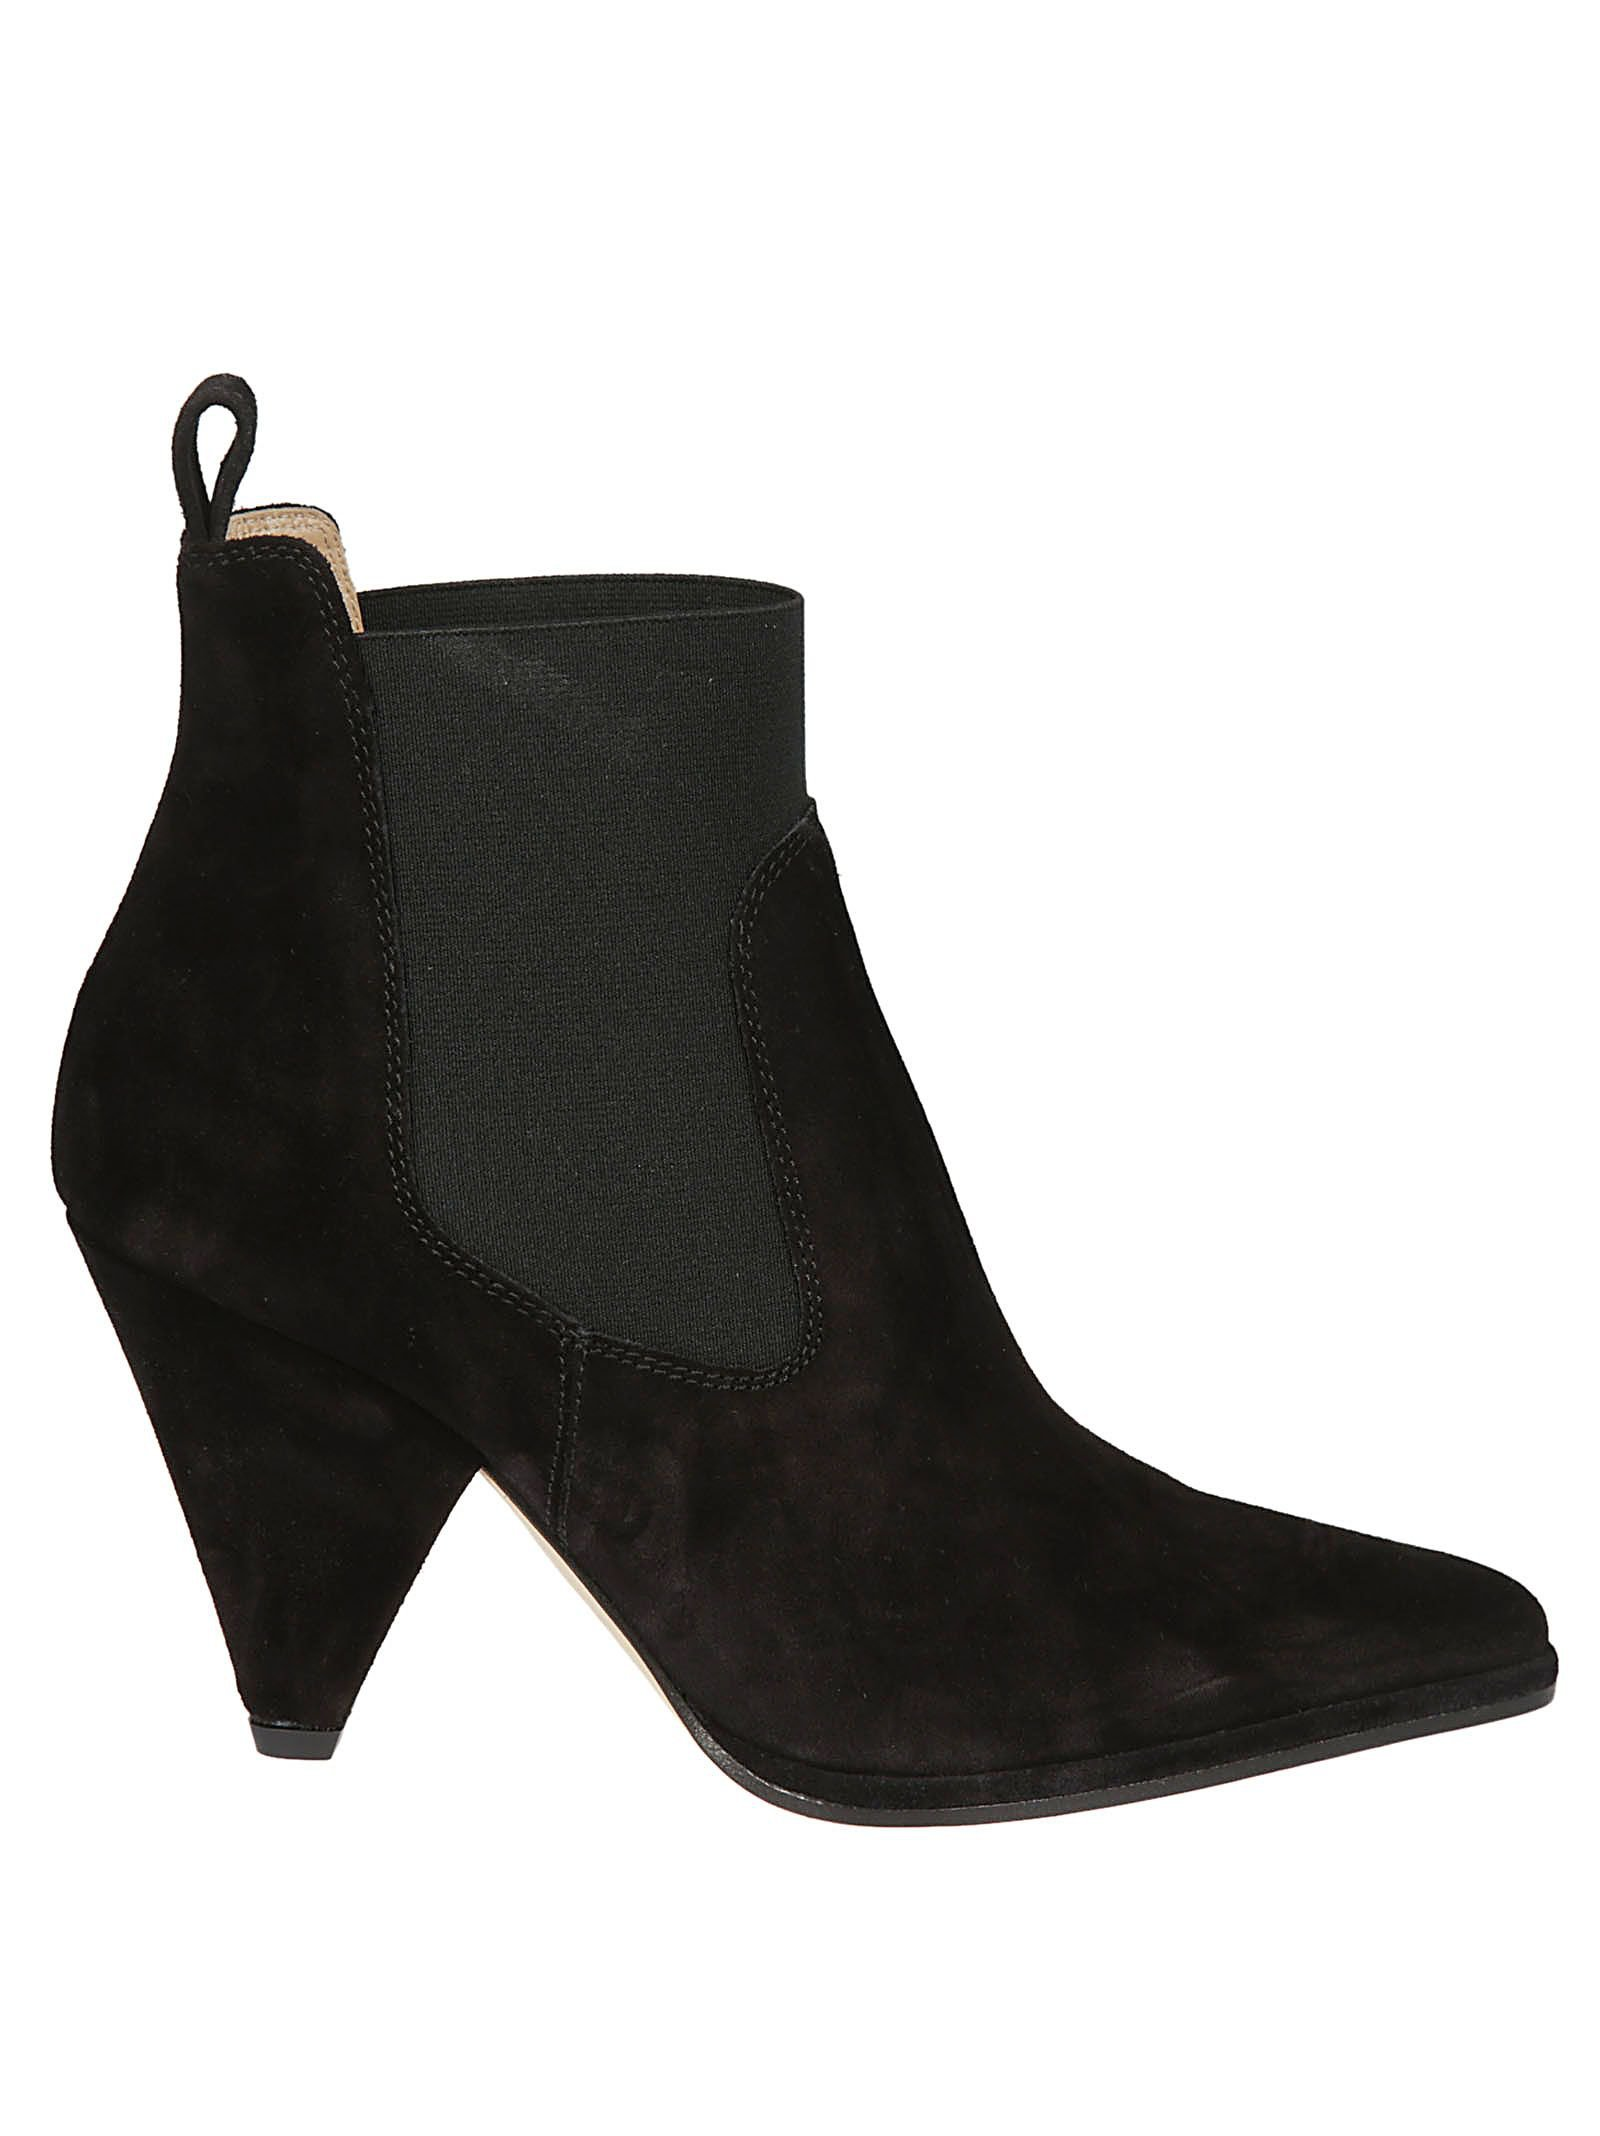 Sergio Rossi Slip-on Ankle Boots